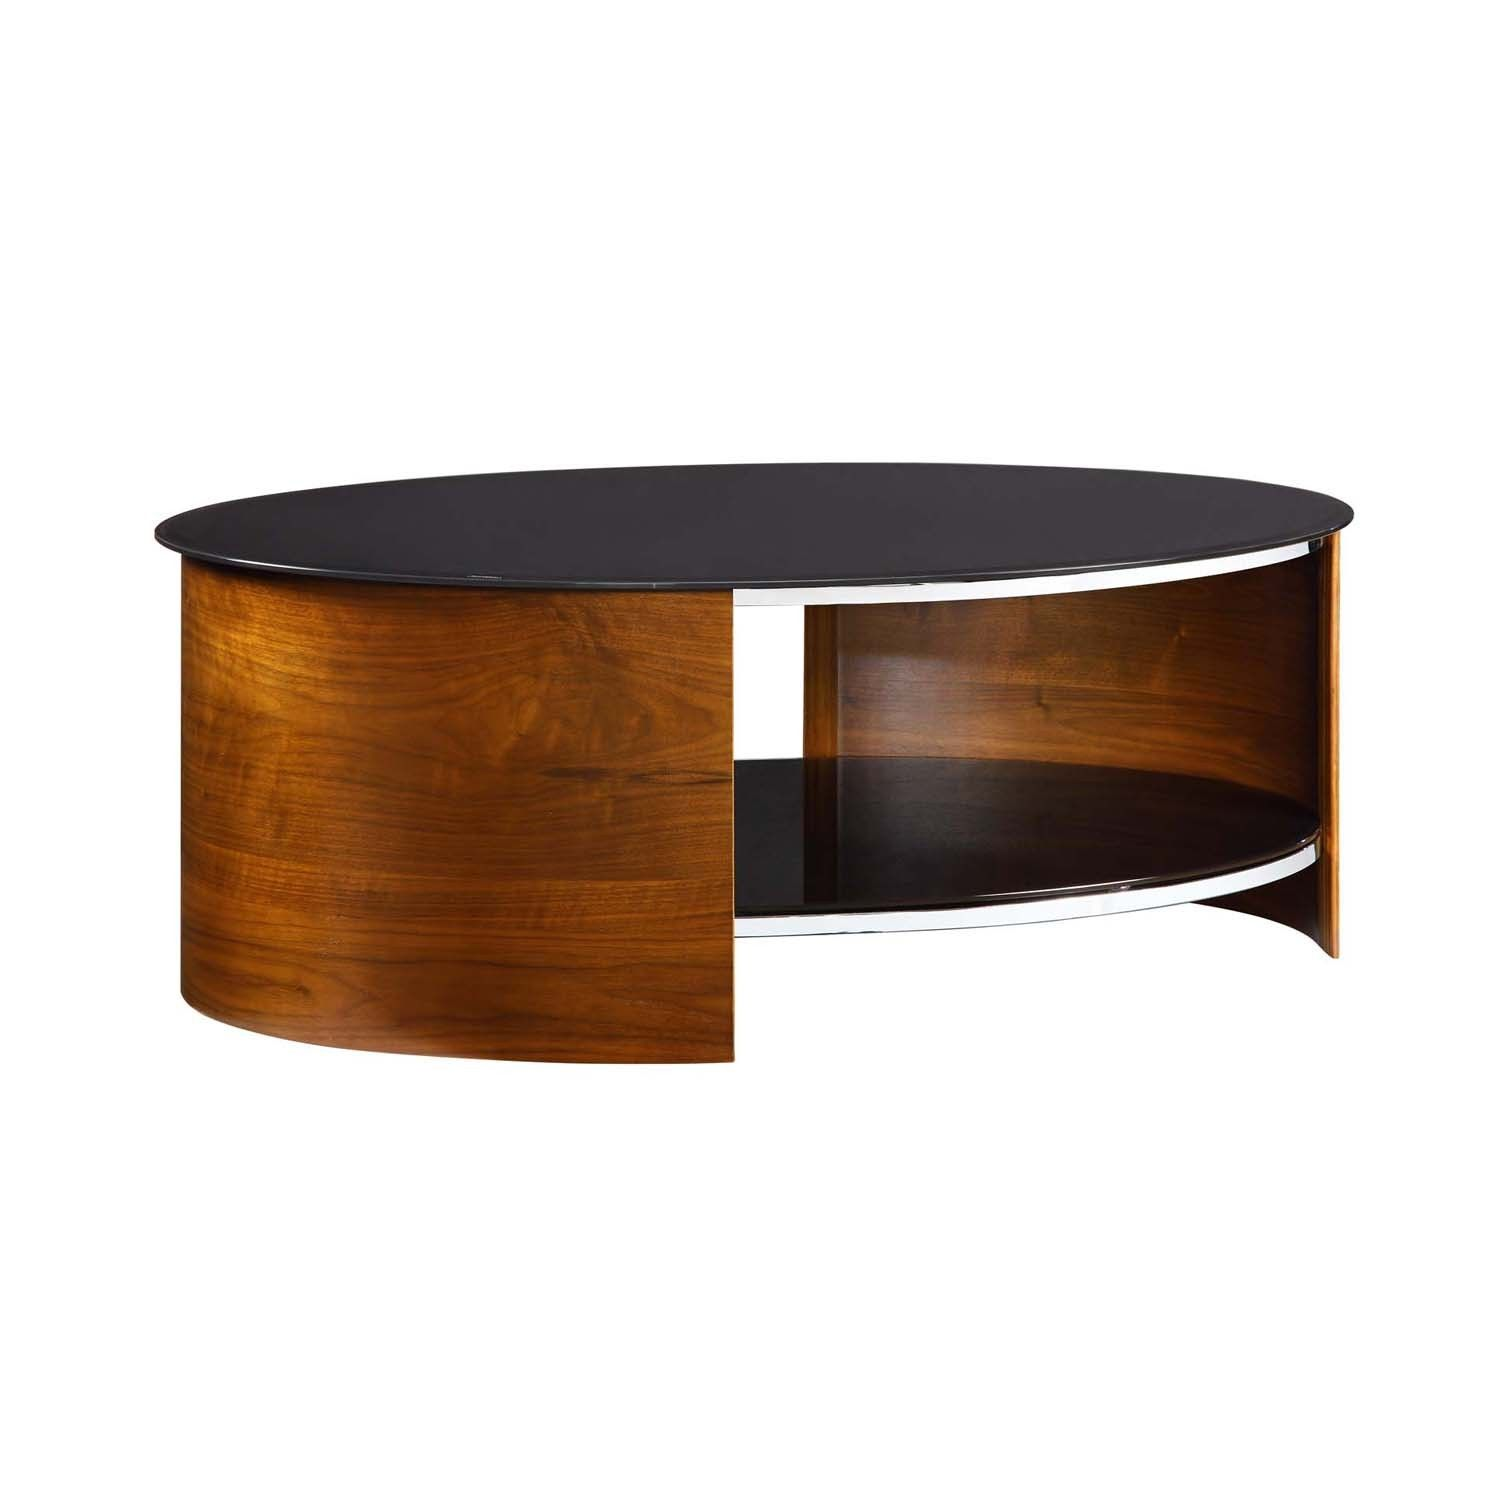 25 Elegant Oval Coffee Table Designs Made Of Gl And Wood Pinterest Tables Design